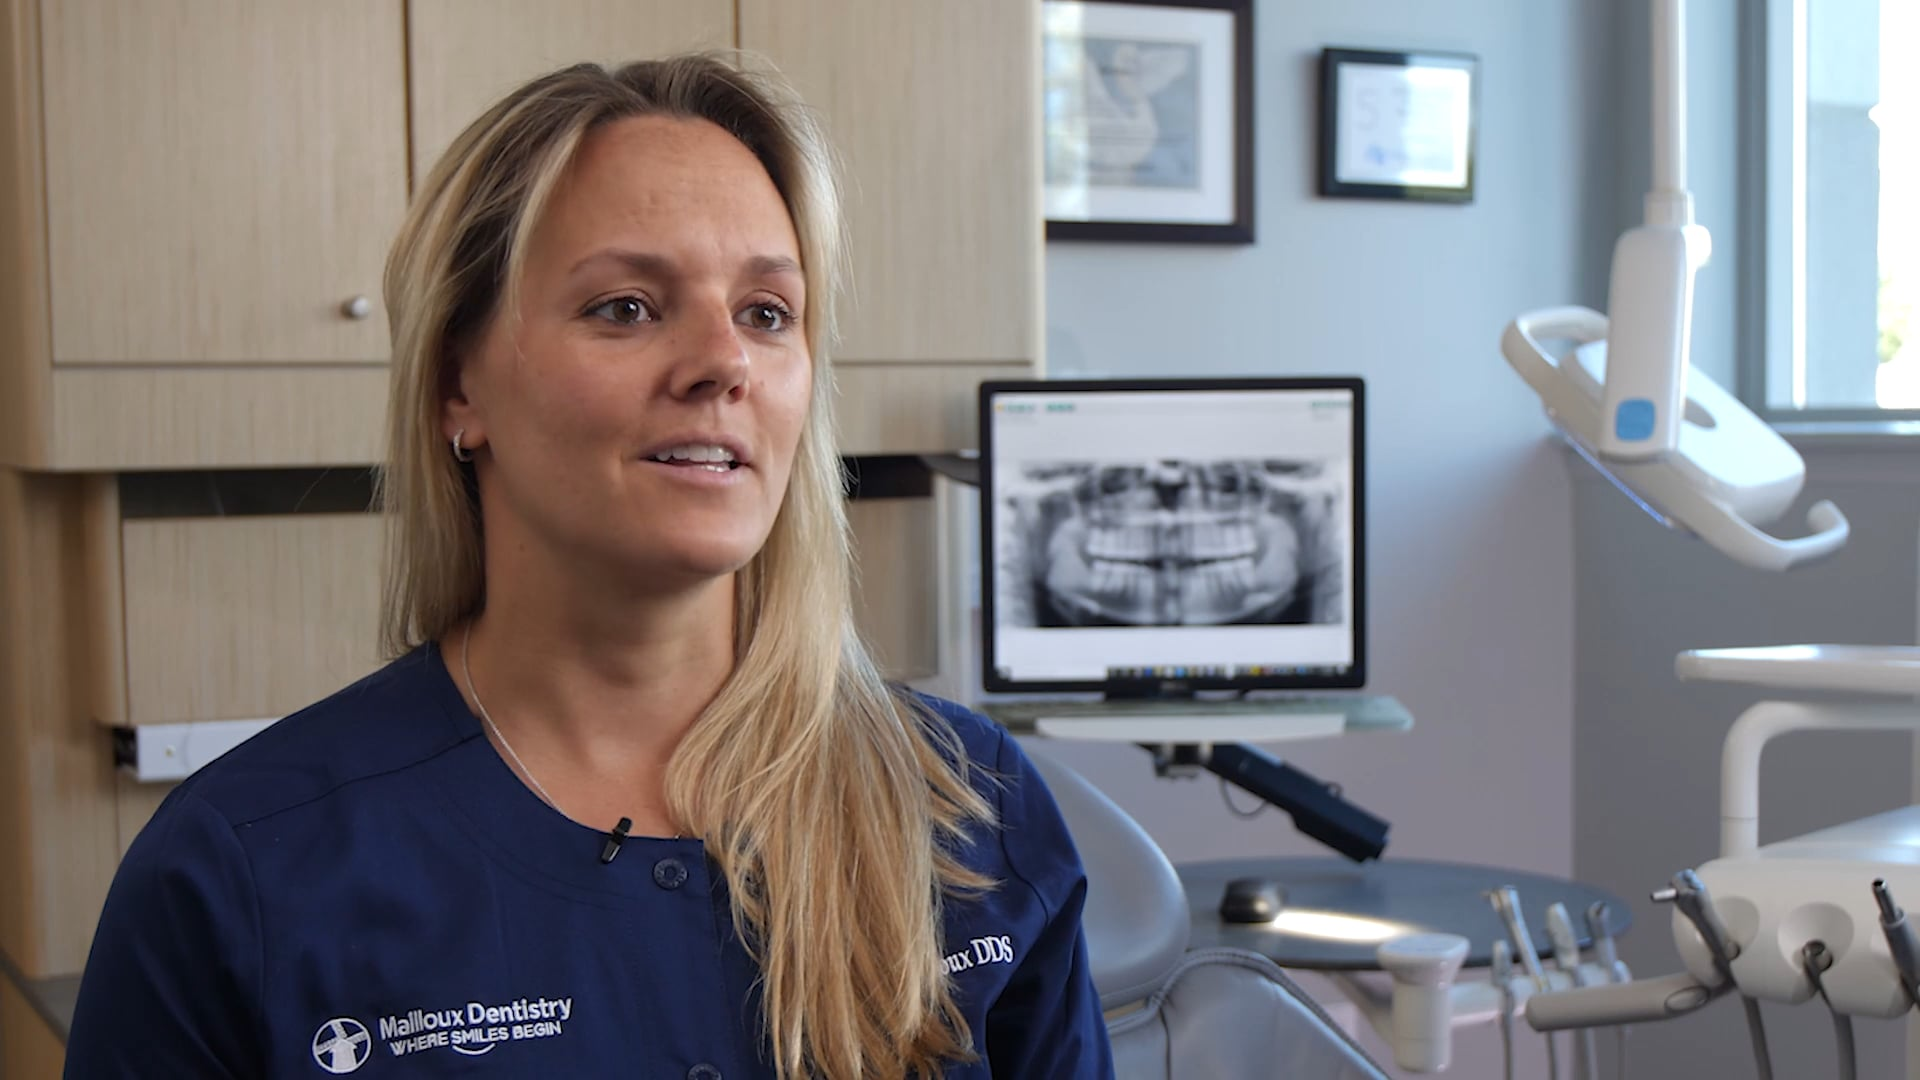 Mailoux Dentistry